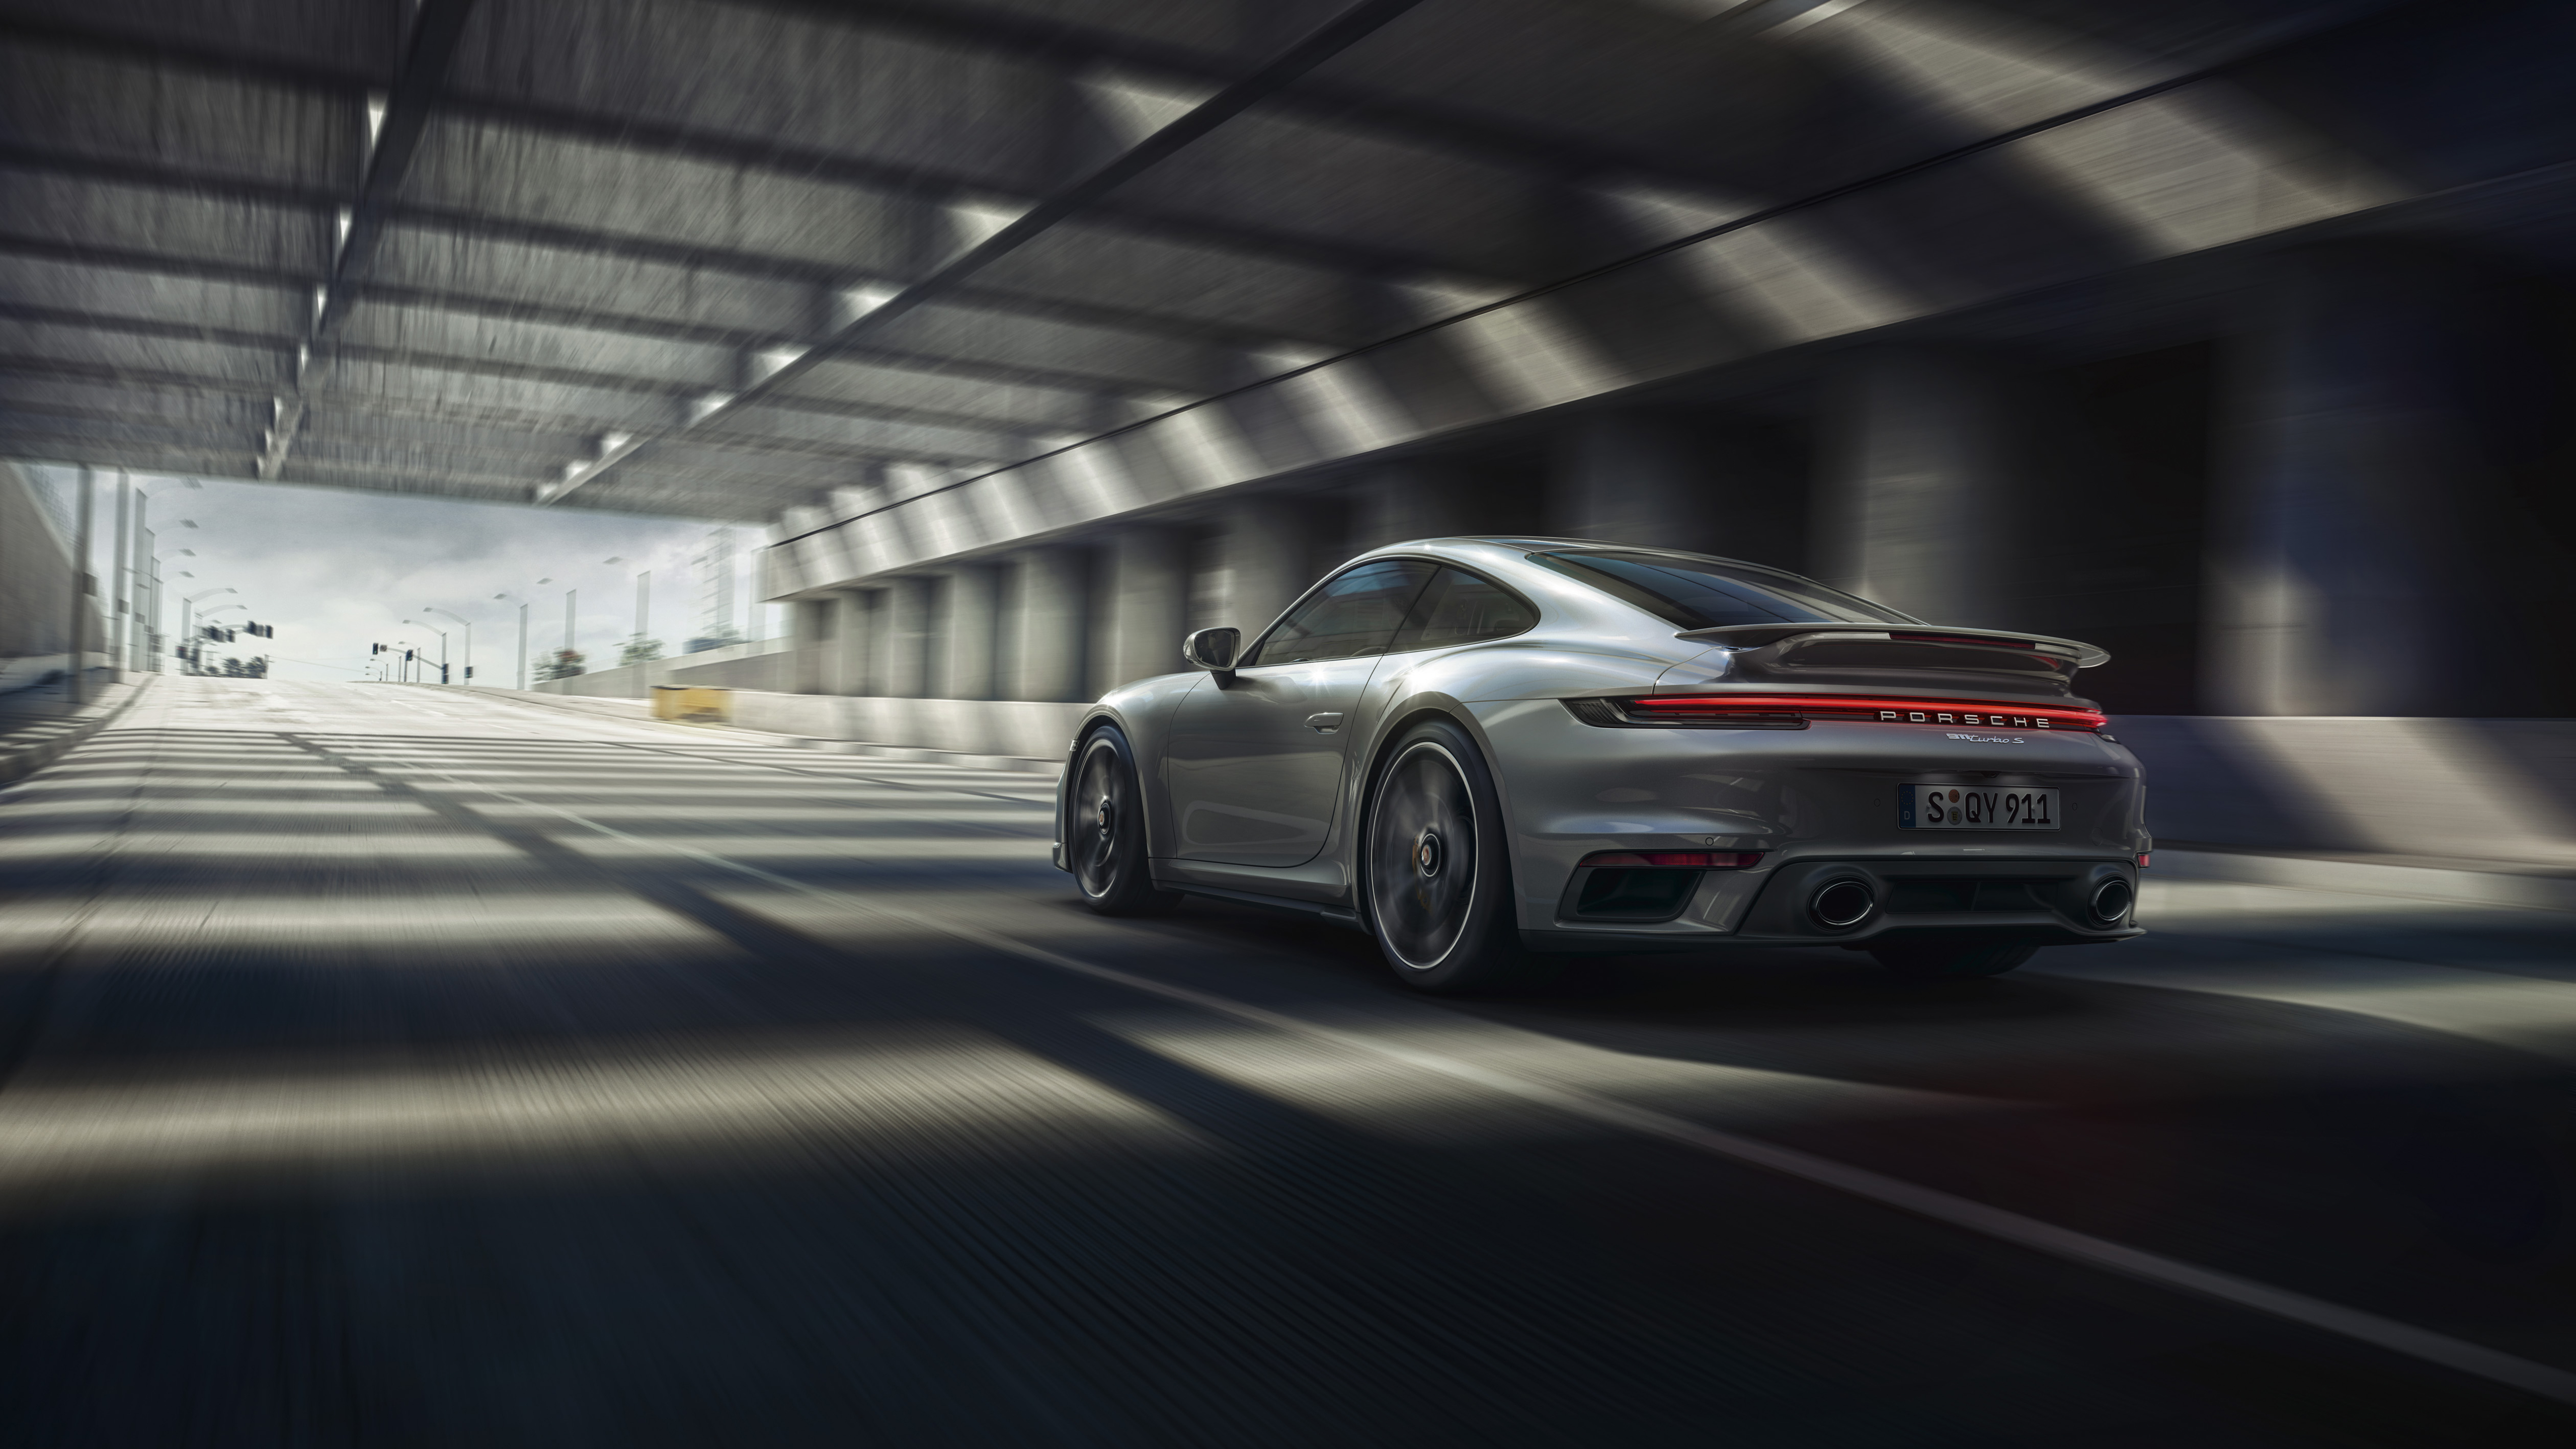 Porsche 911 Turbo coupe restyling